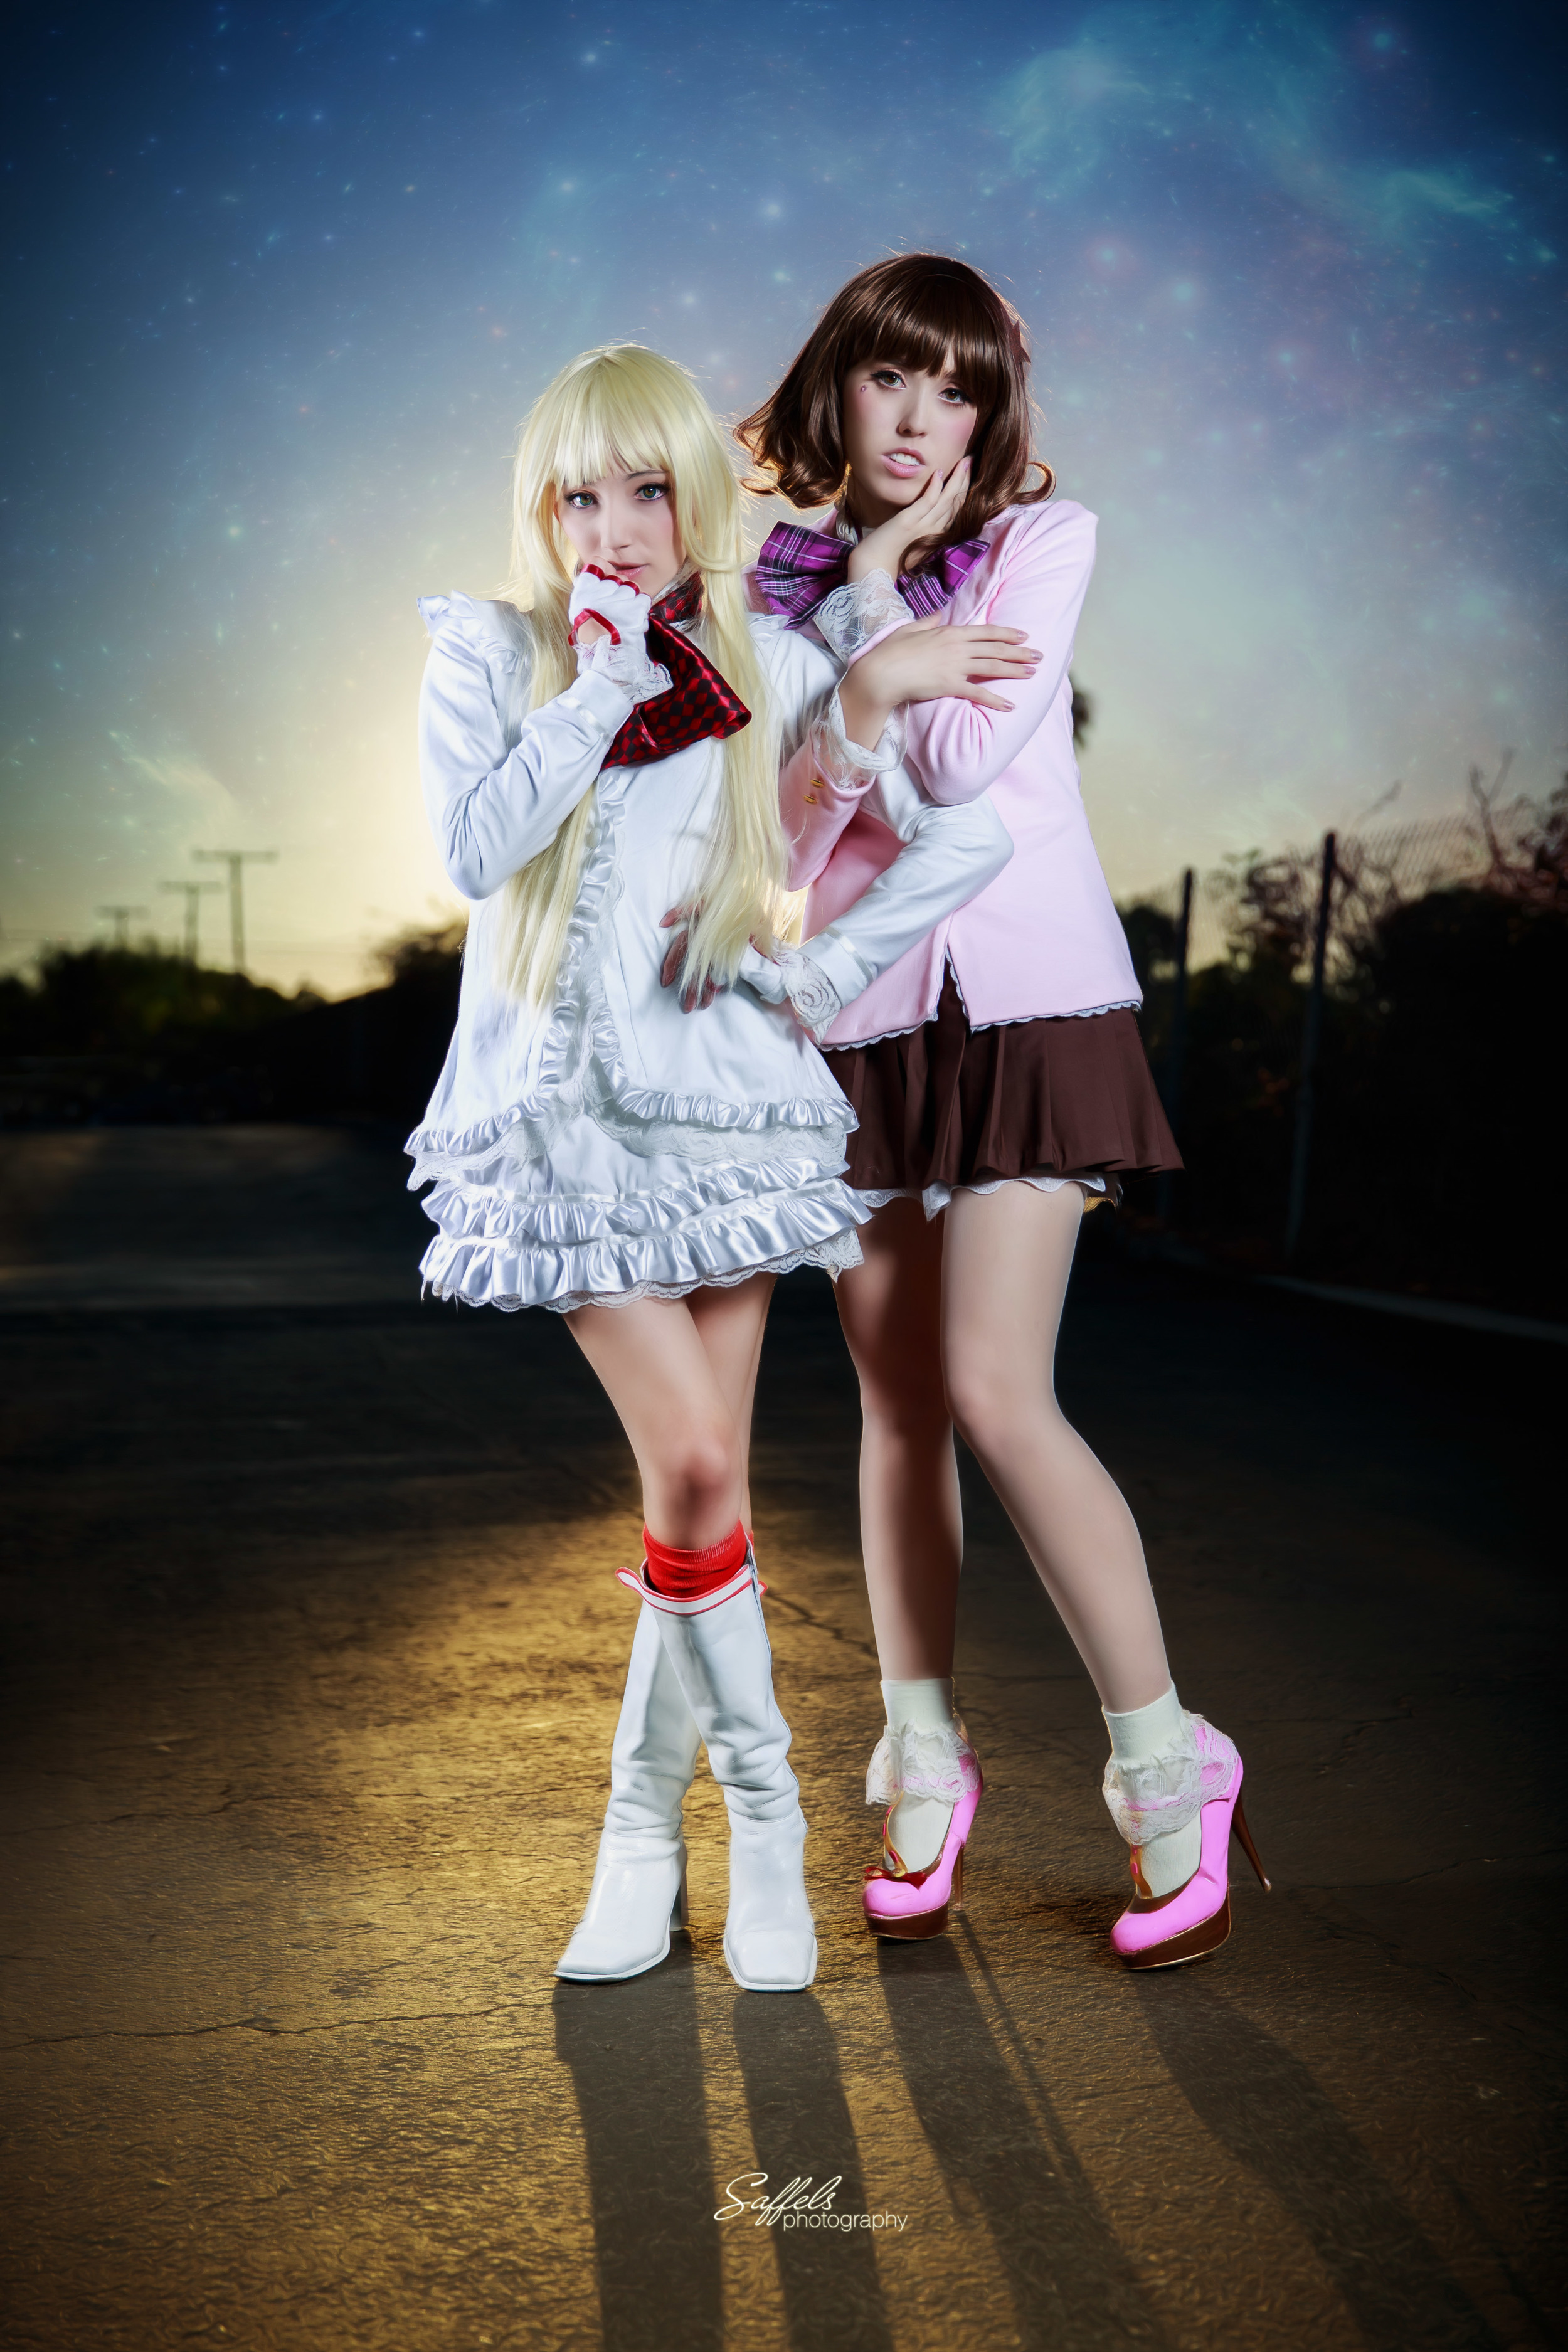 Moon Farron Cosplay and Miss Macross Cosplay as Lili from Tekken and Mika from Killer is Dead